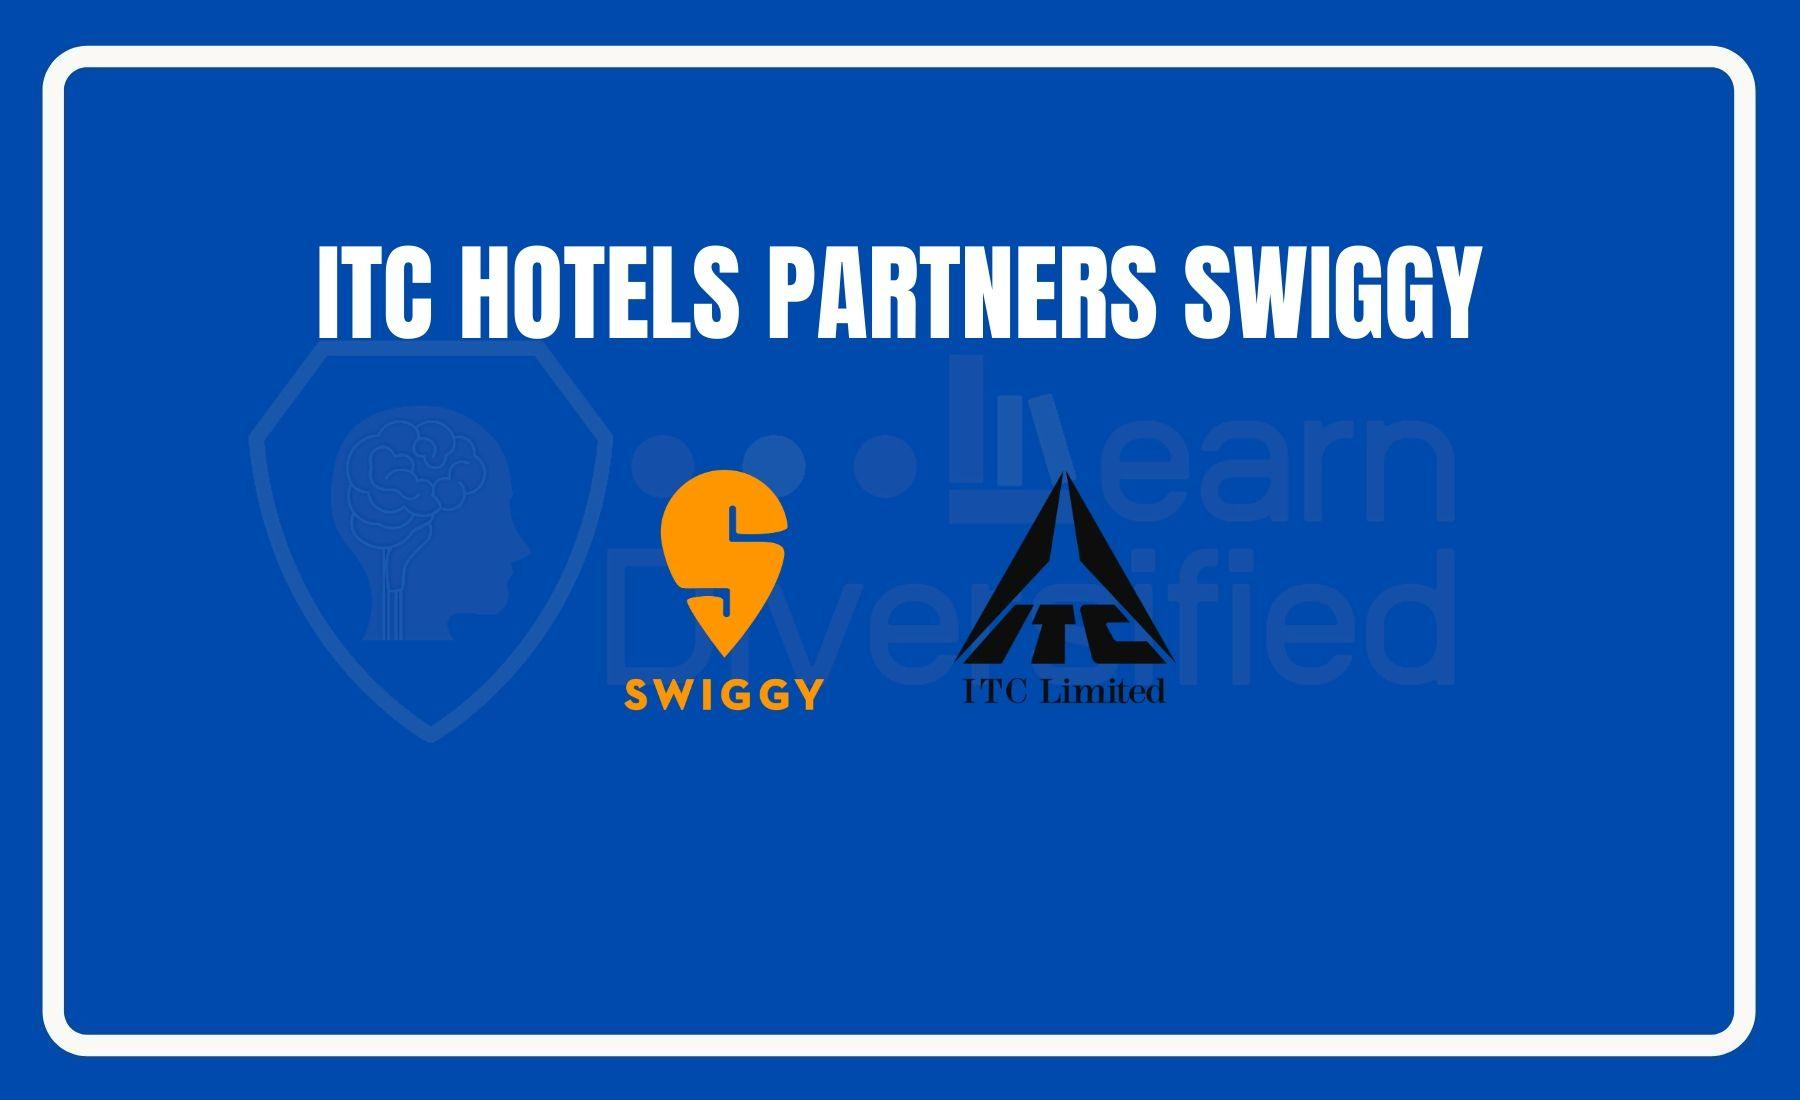 ITC Hotels Partnering with Swiggy